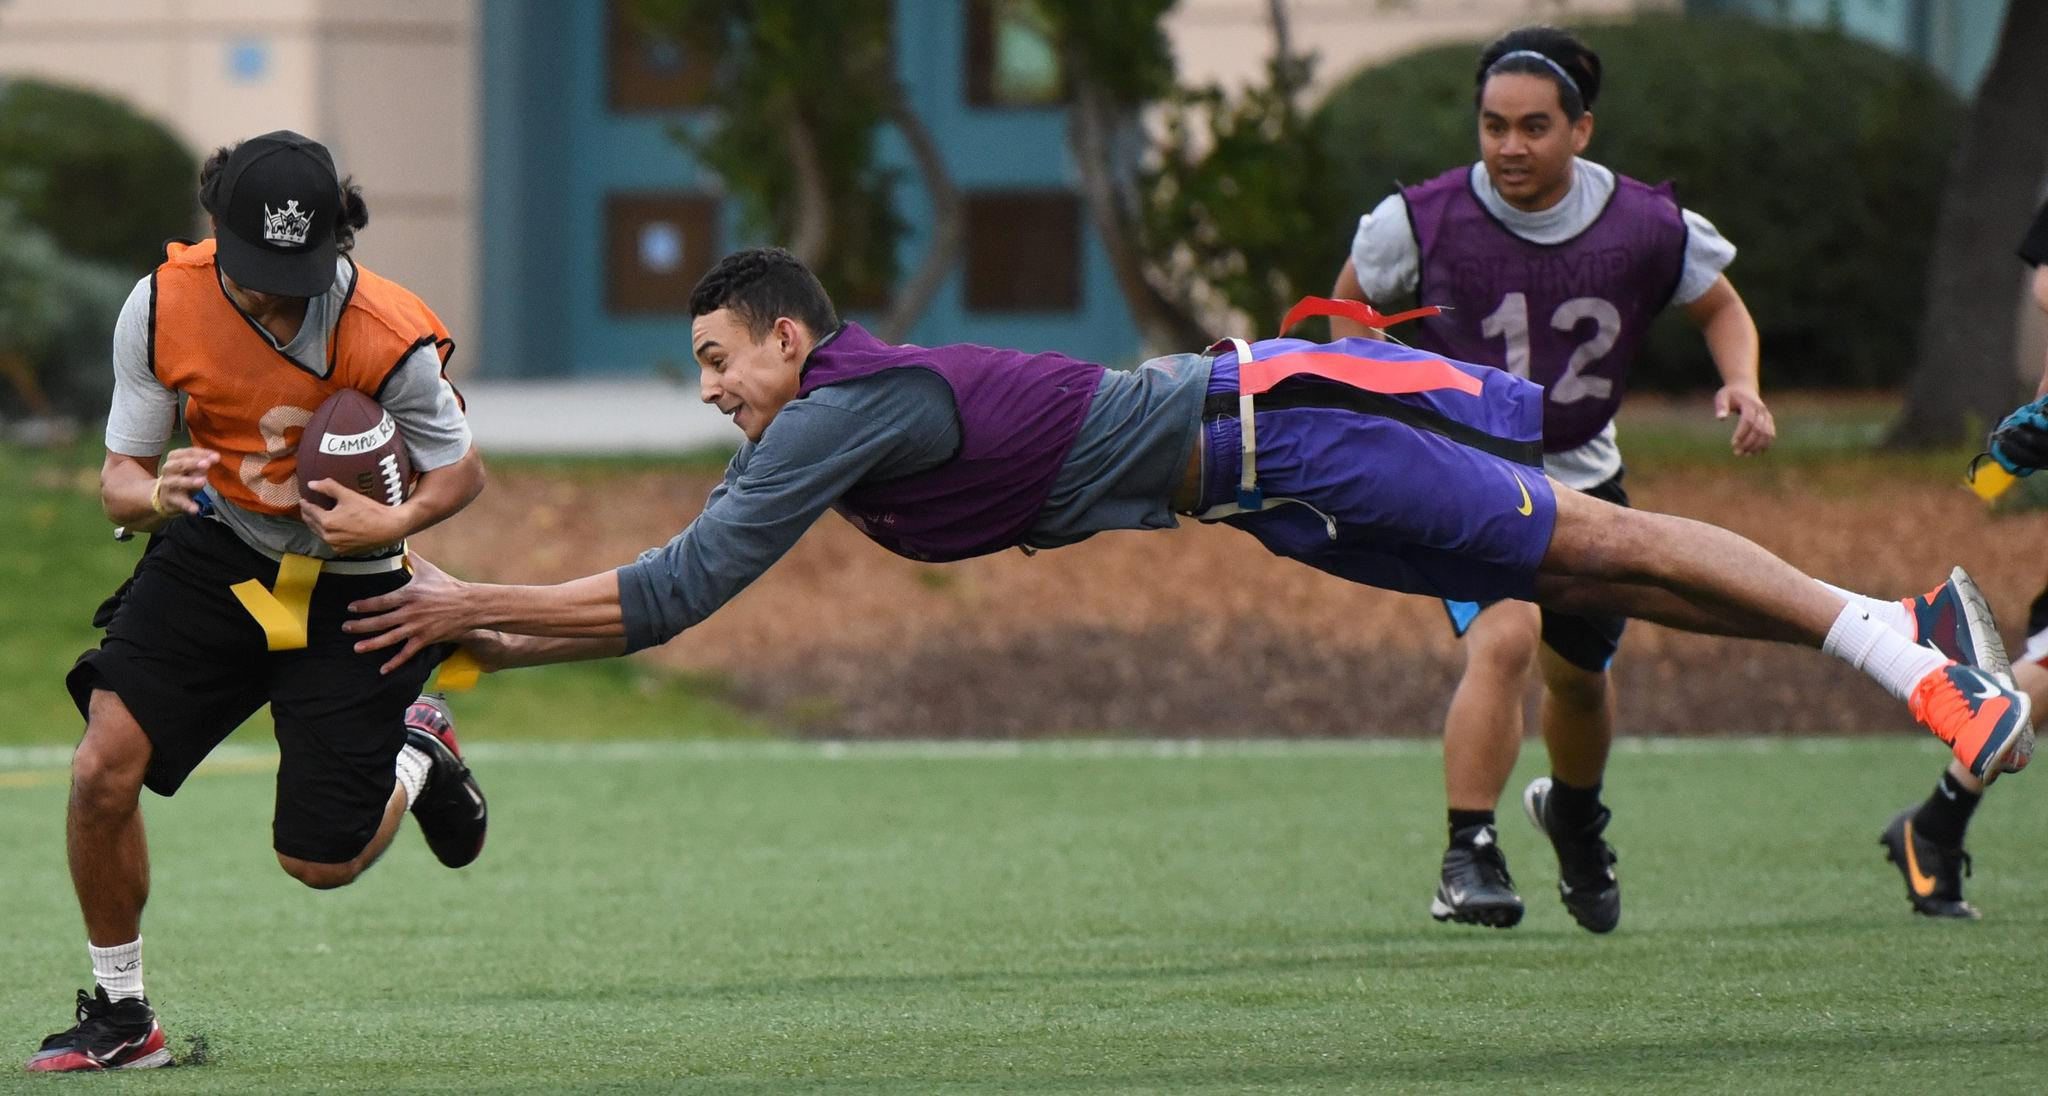 Taurean Oram (7) of the Wolf Pack dives through the air as he grabs a Swolldiers player's flag in an intramural flag football game at the West Campus Green field Monday, Sept. 28. (David Henry / Xpress)